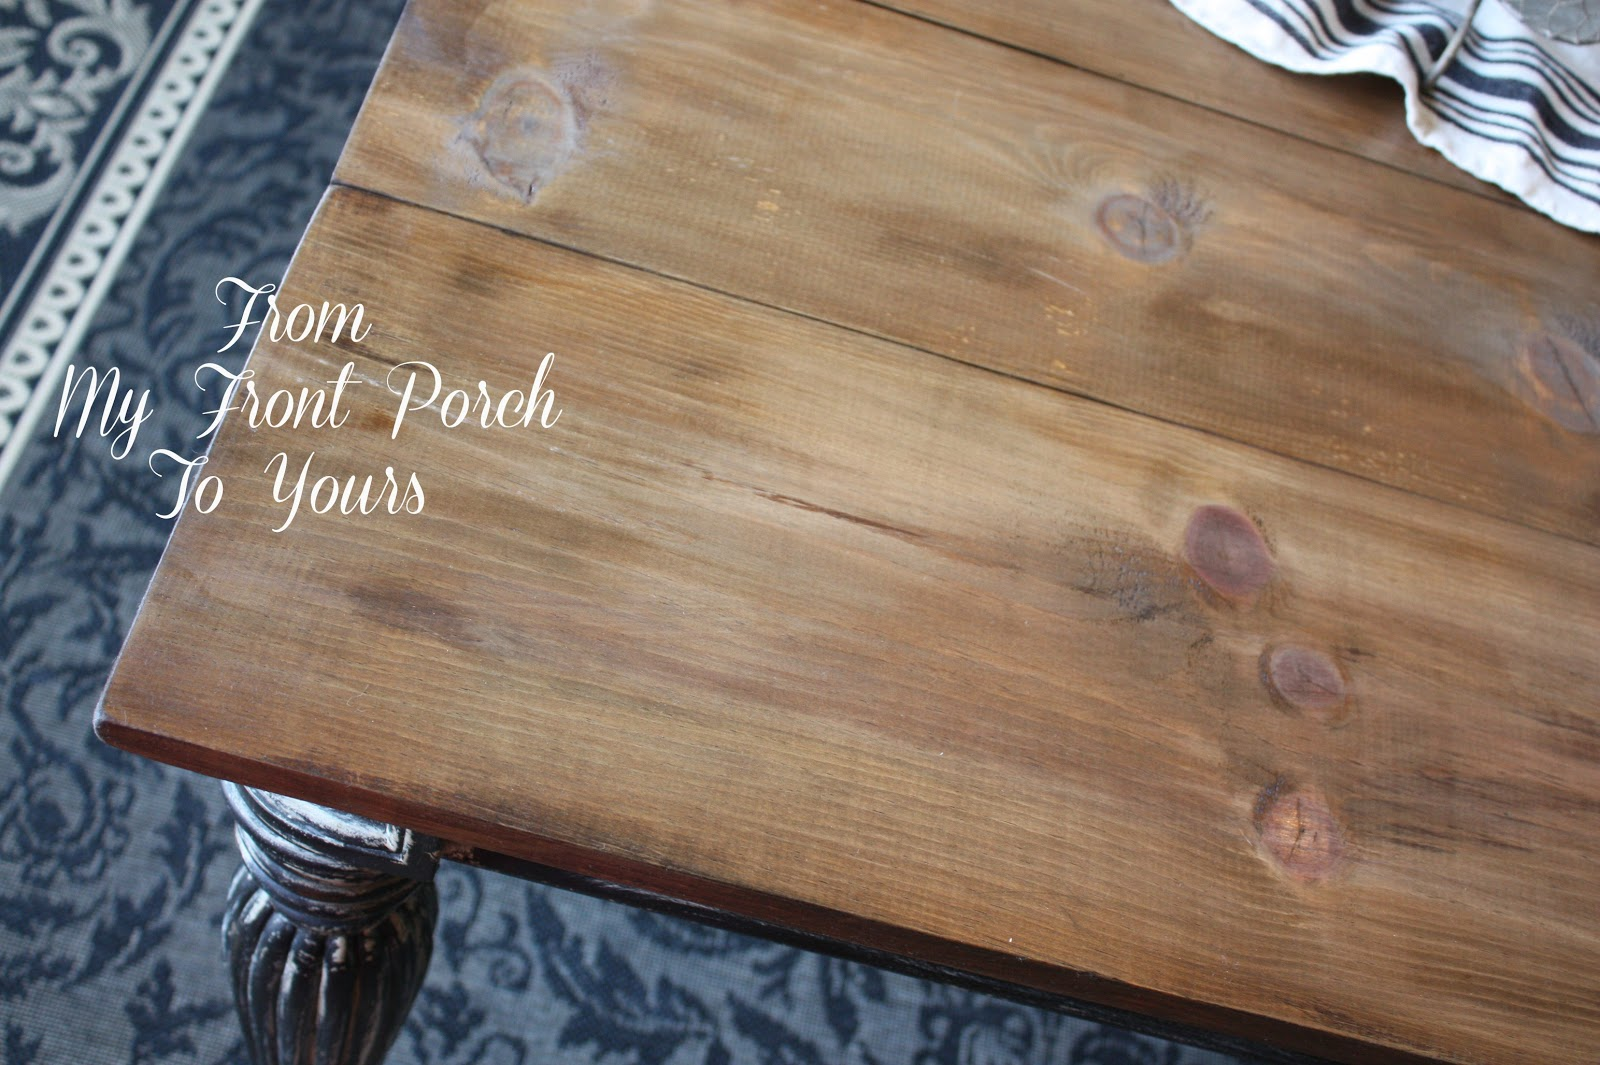 Diy Wood Planked Table Top Farmhouse Dining Room From My Front Porch To